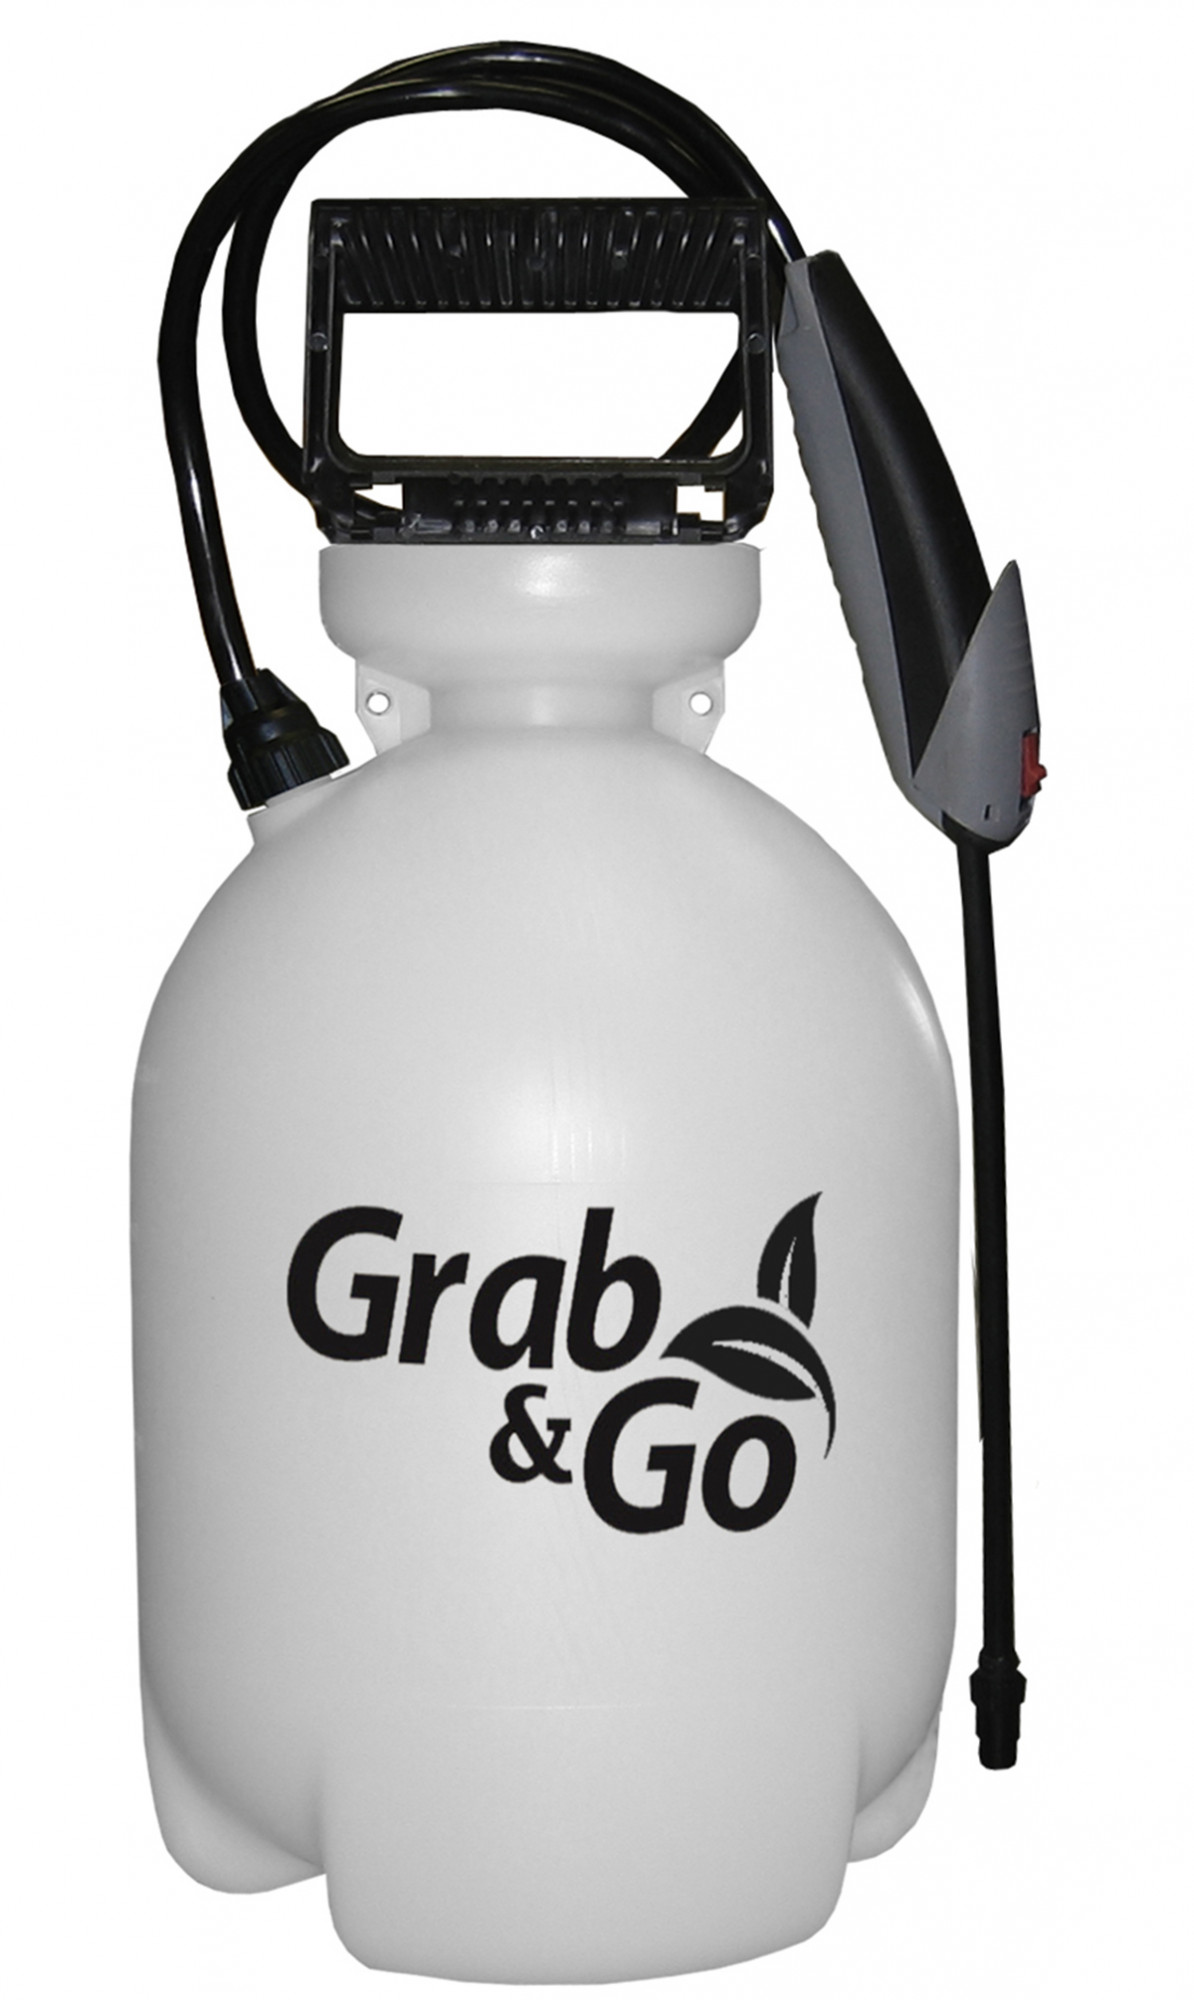 Grab & Go®, 2 Gal, Multi-Purpose Sprayer, Model 190503